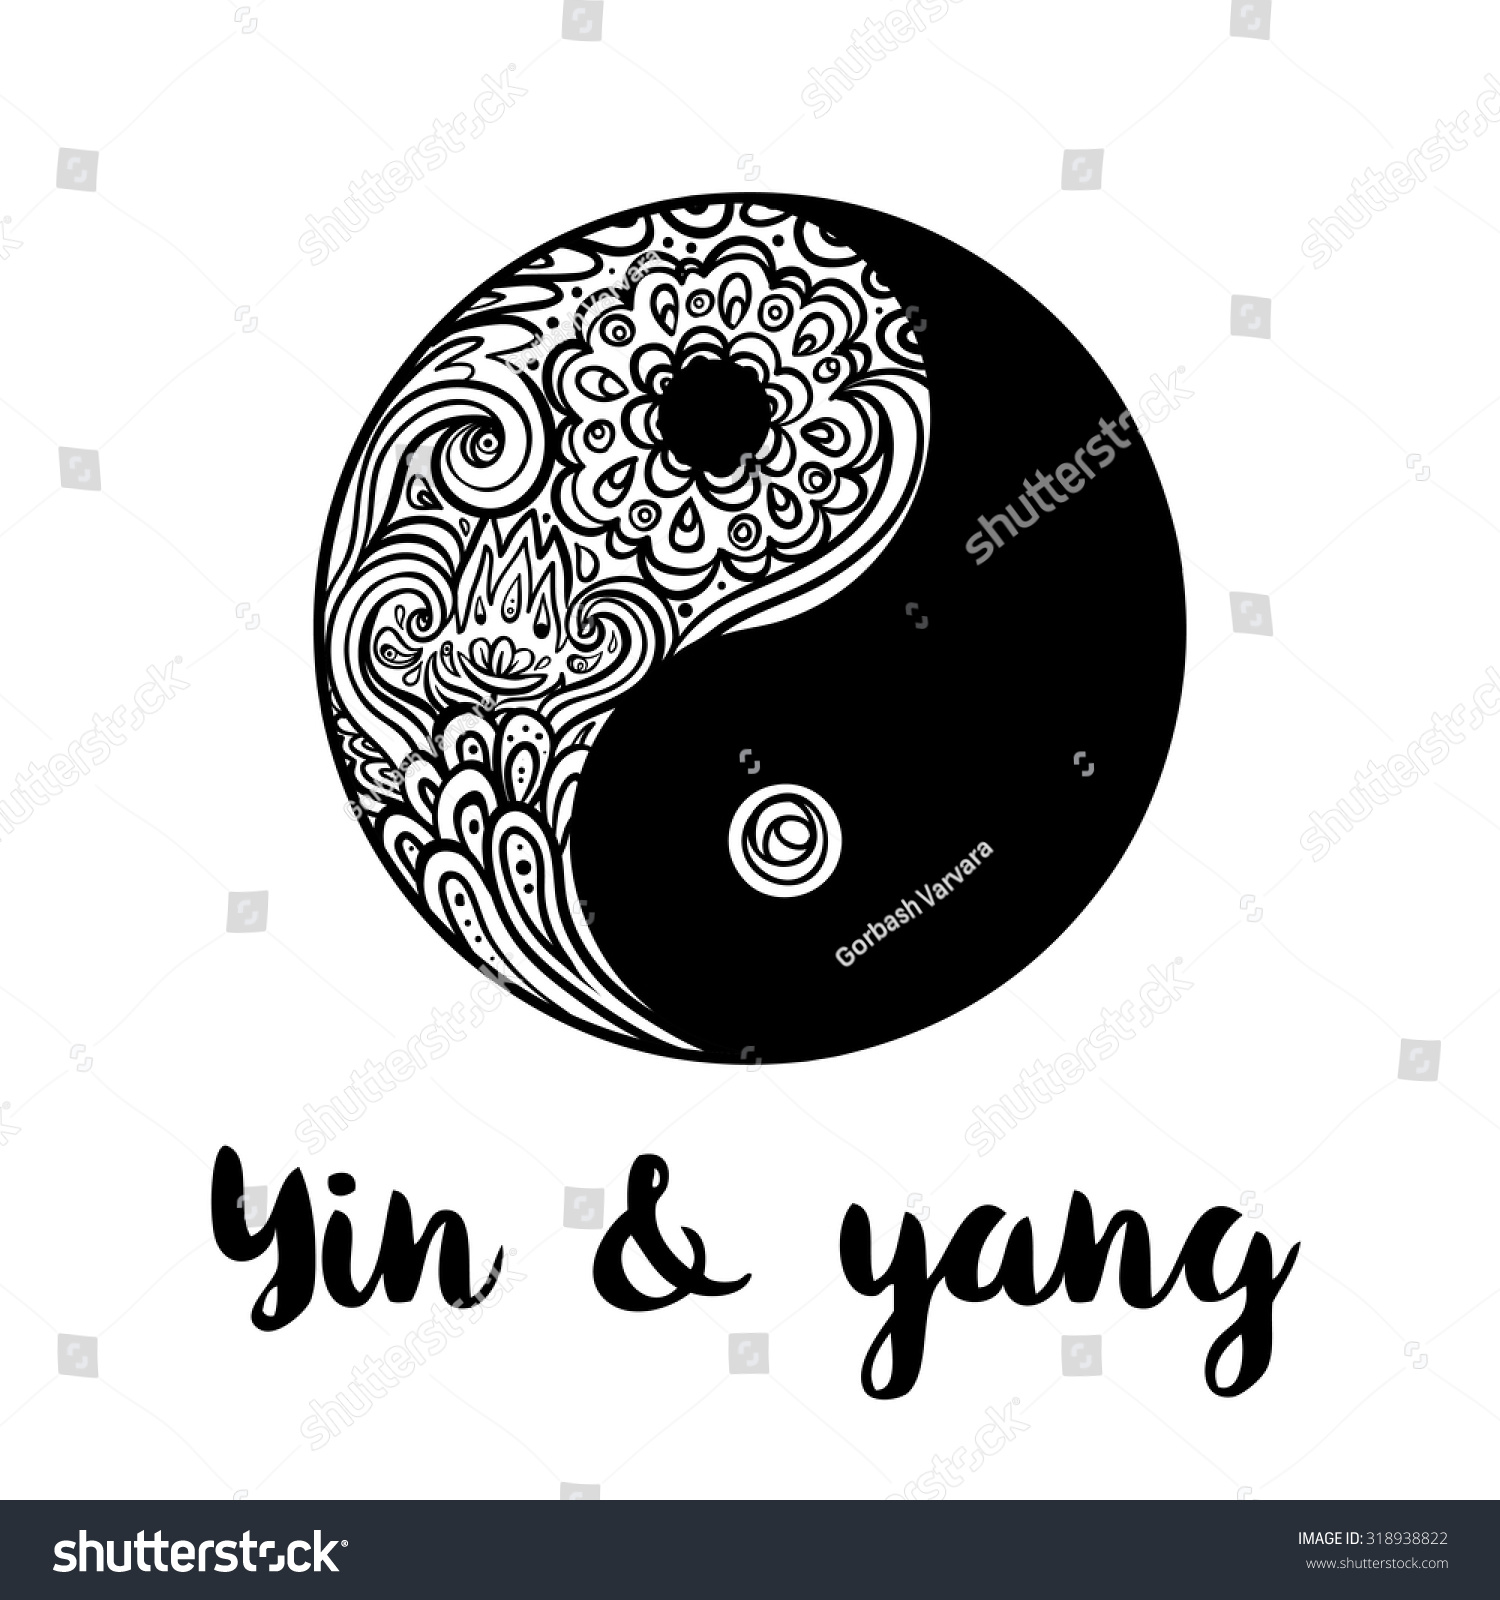 Yin yang decorative symbol hand drawn stock vektor for Architecture yin yang